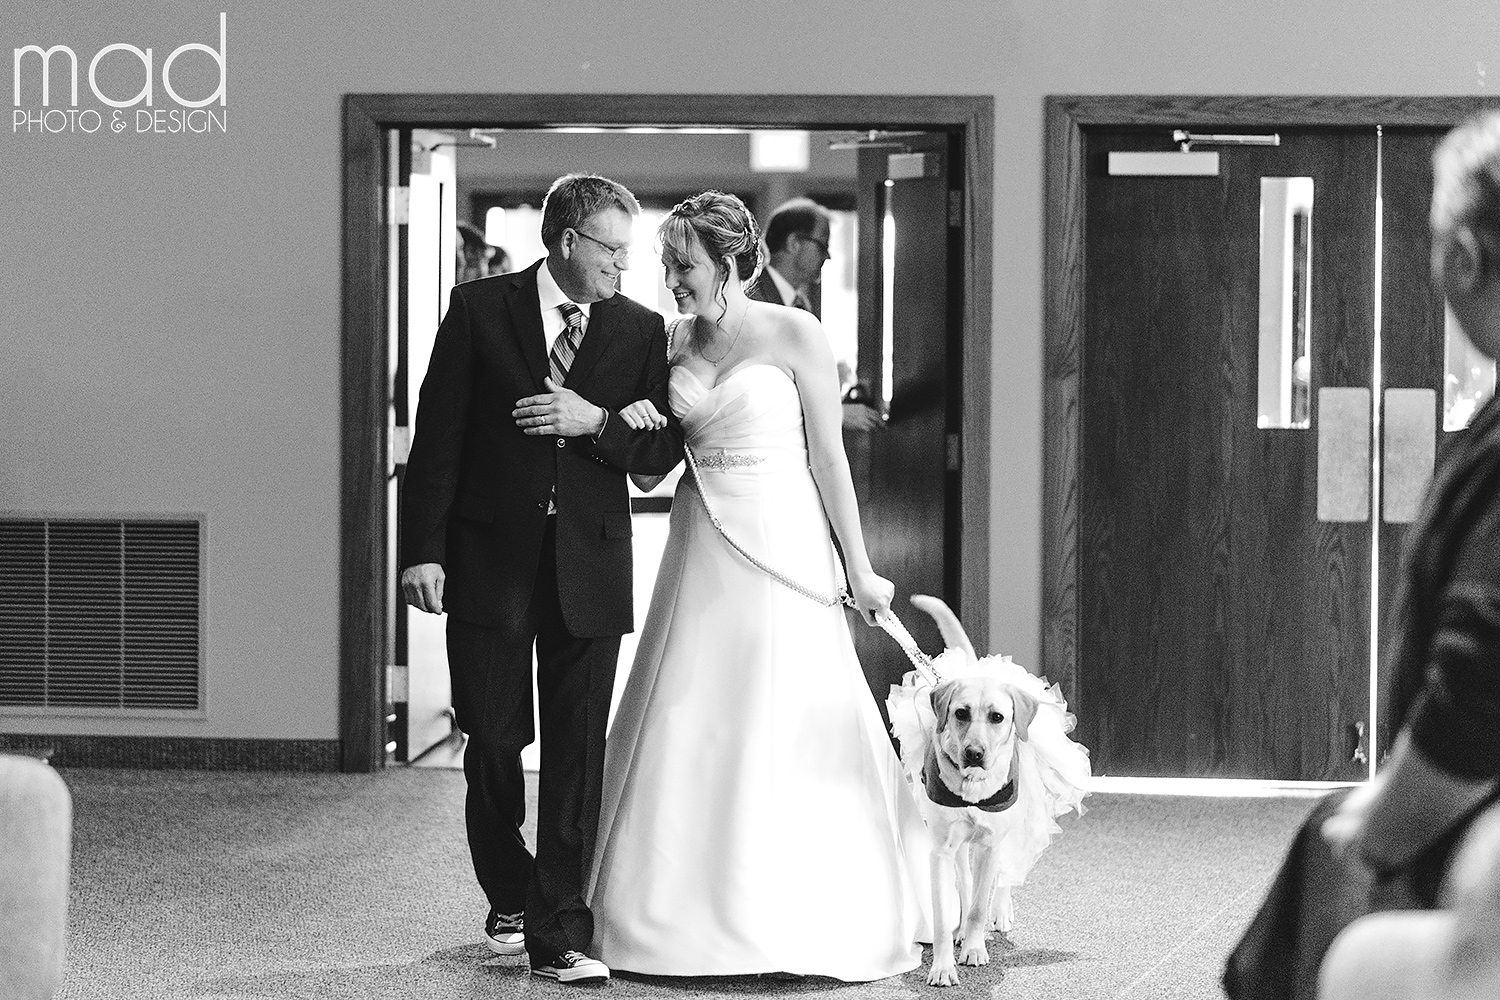 Valerie's service dog, Bella, helped escort her down the aisle on her wedding day. Credit: Mad Photo & Design